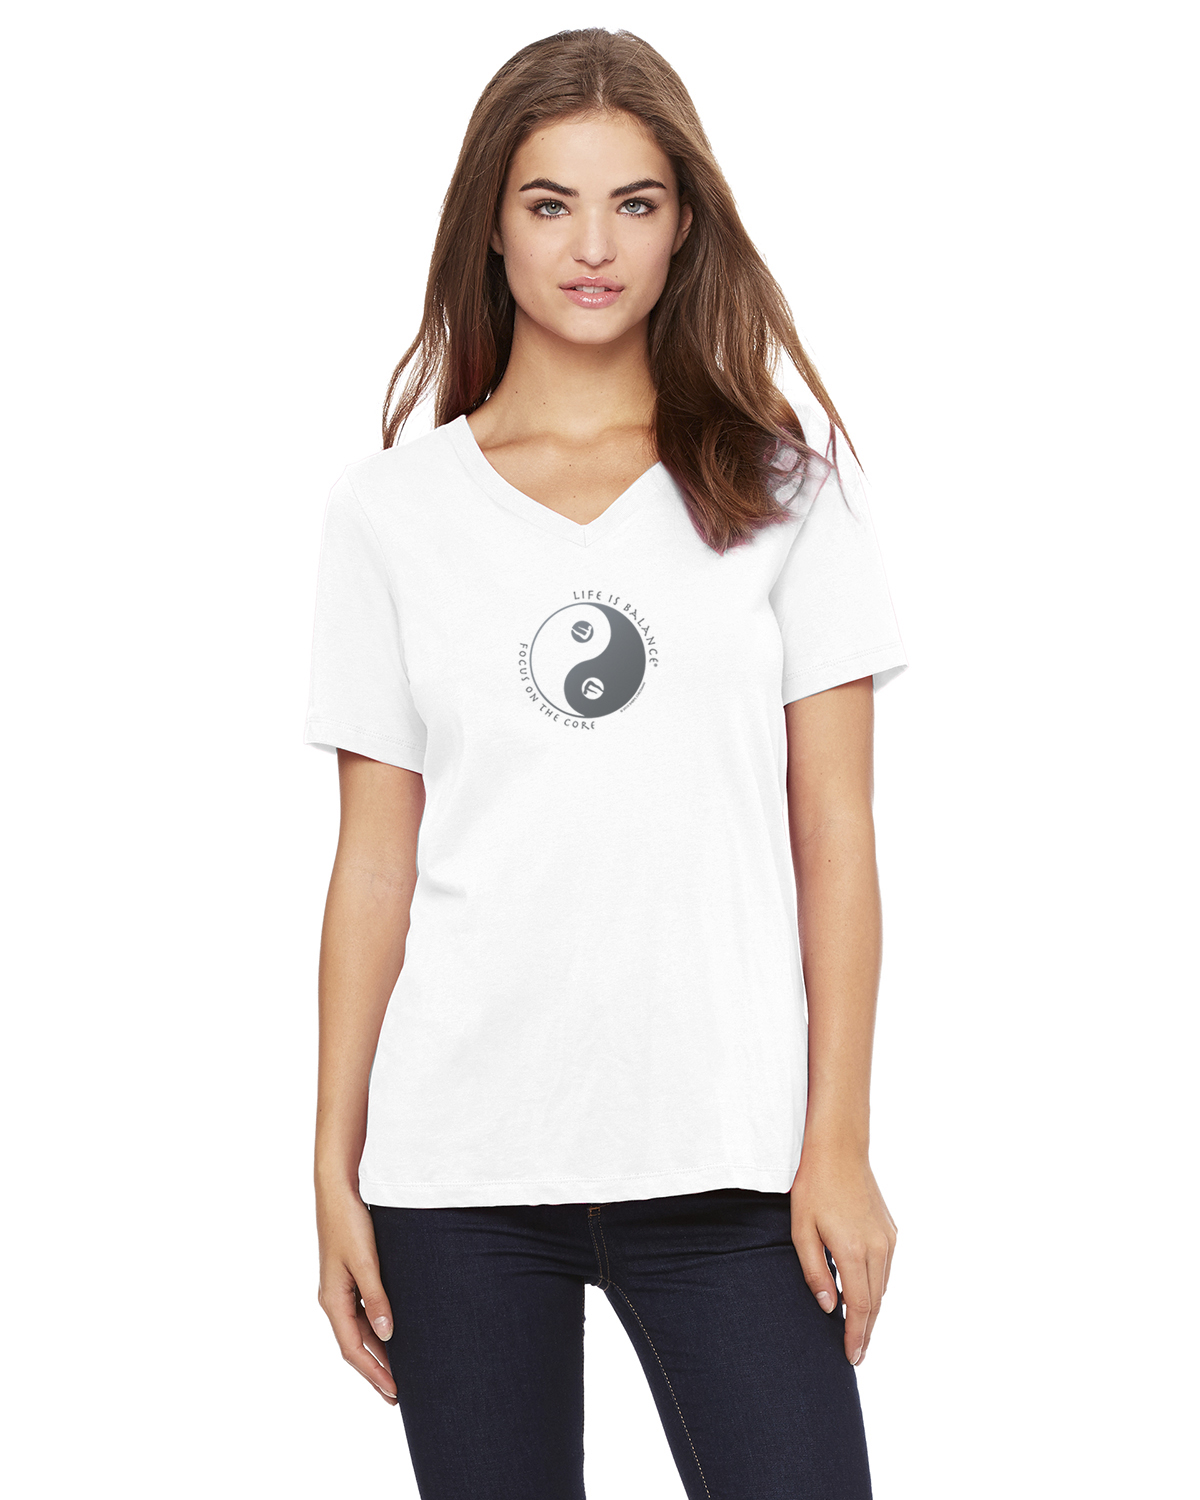 Pilates v-neck T-Shirt for Women (White)